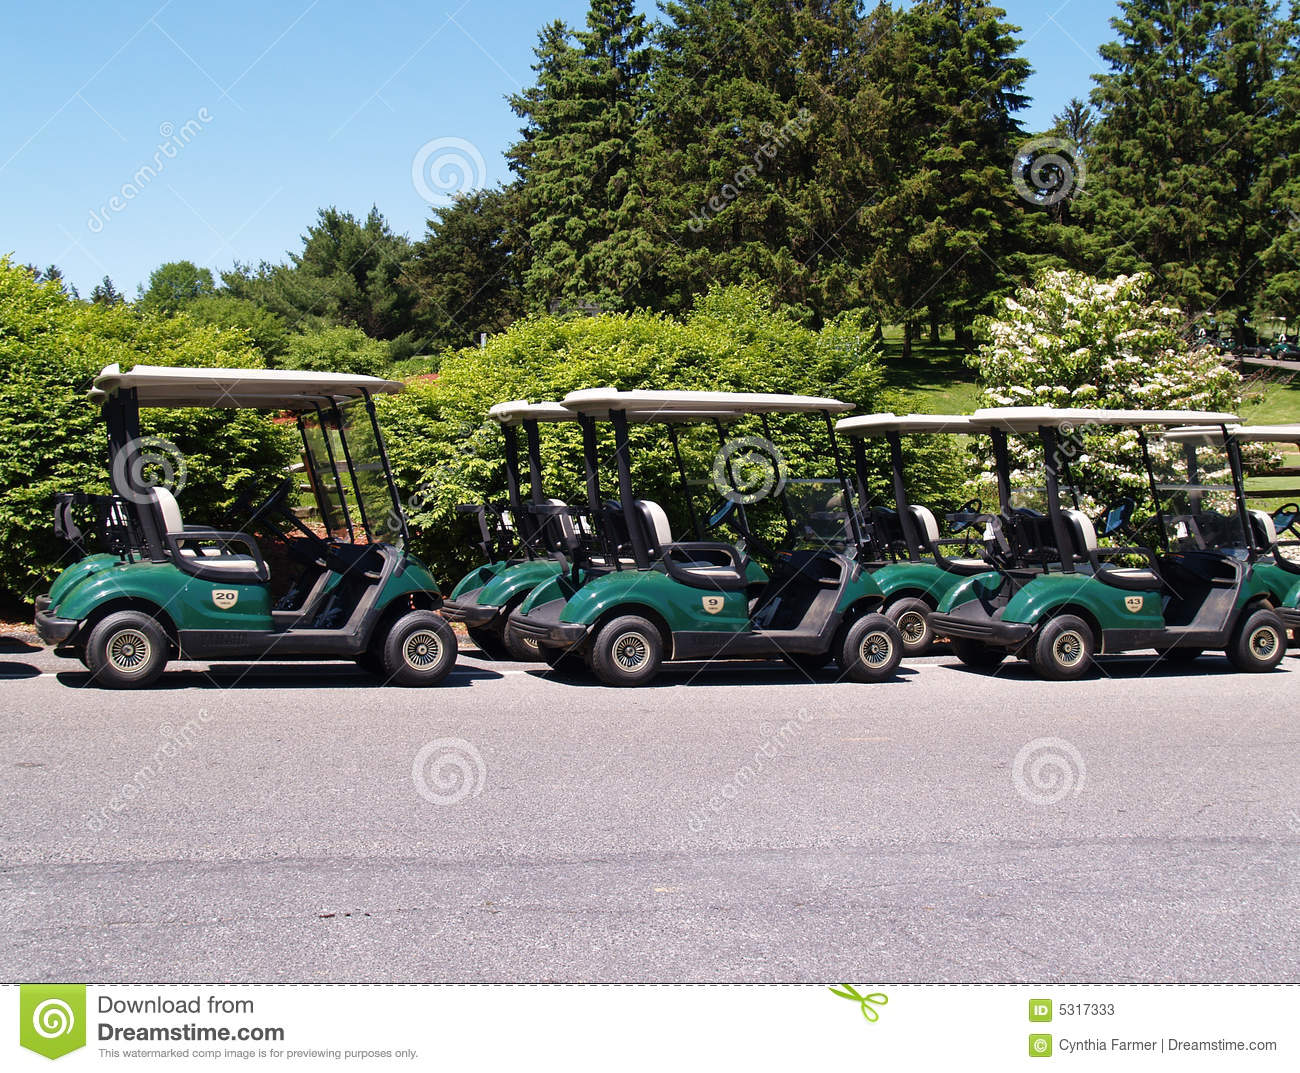 Download Riga dei carrelli di golf immagine stock. Immagine di buggy - 5317333